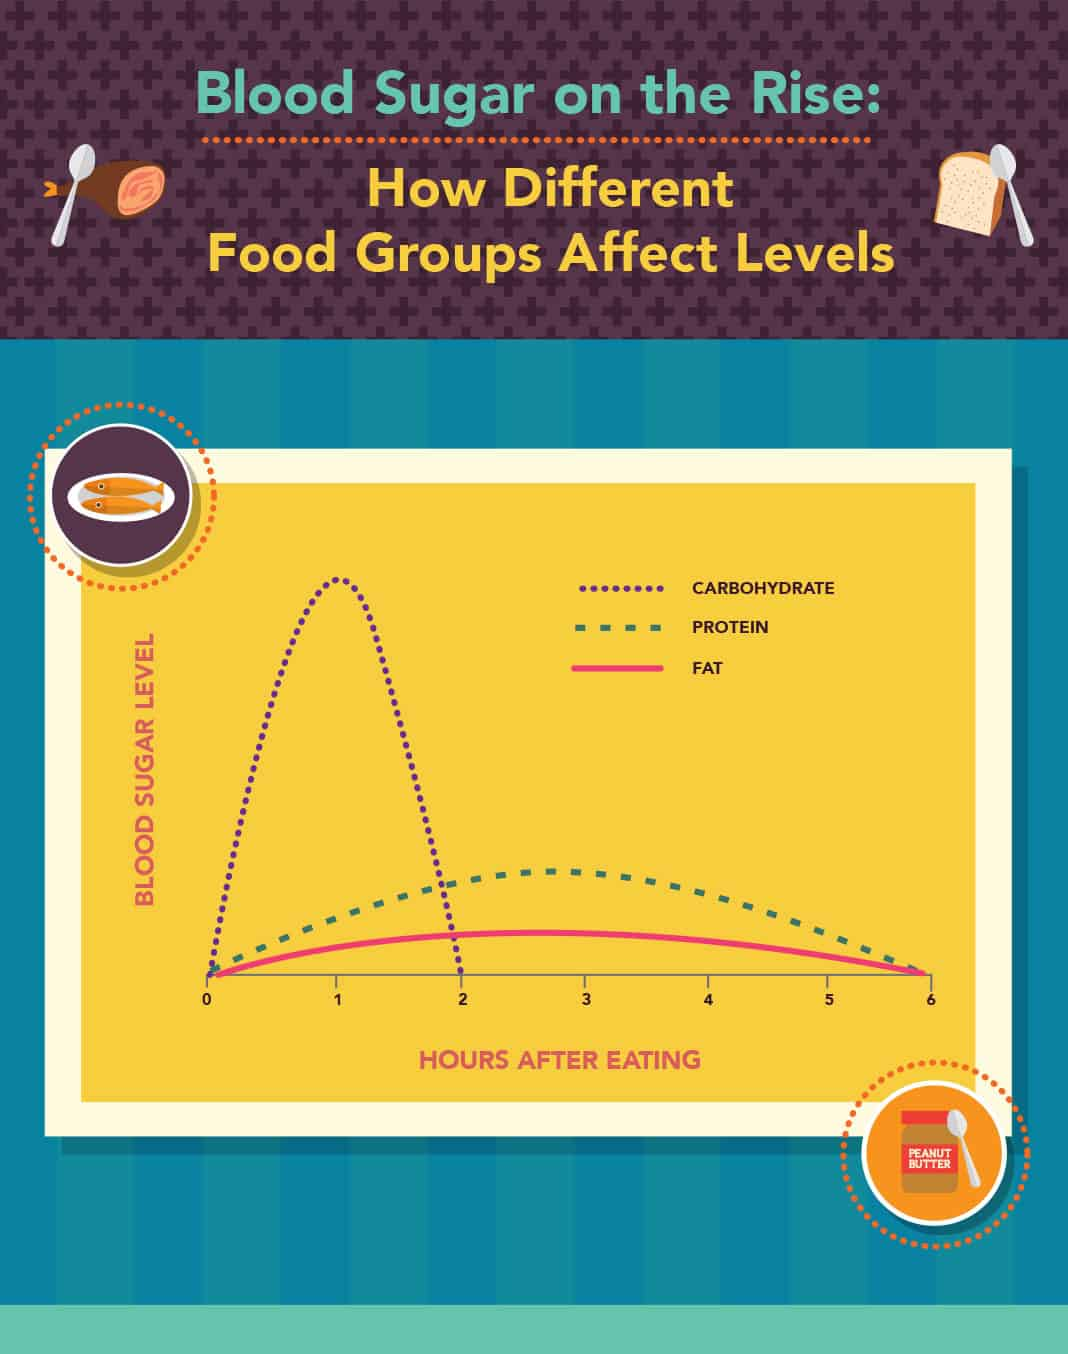 How Different Food Groups Affect Levels